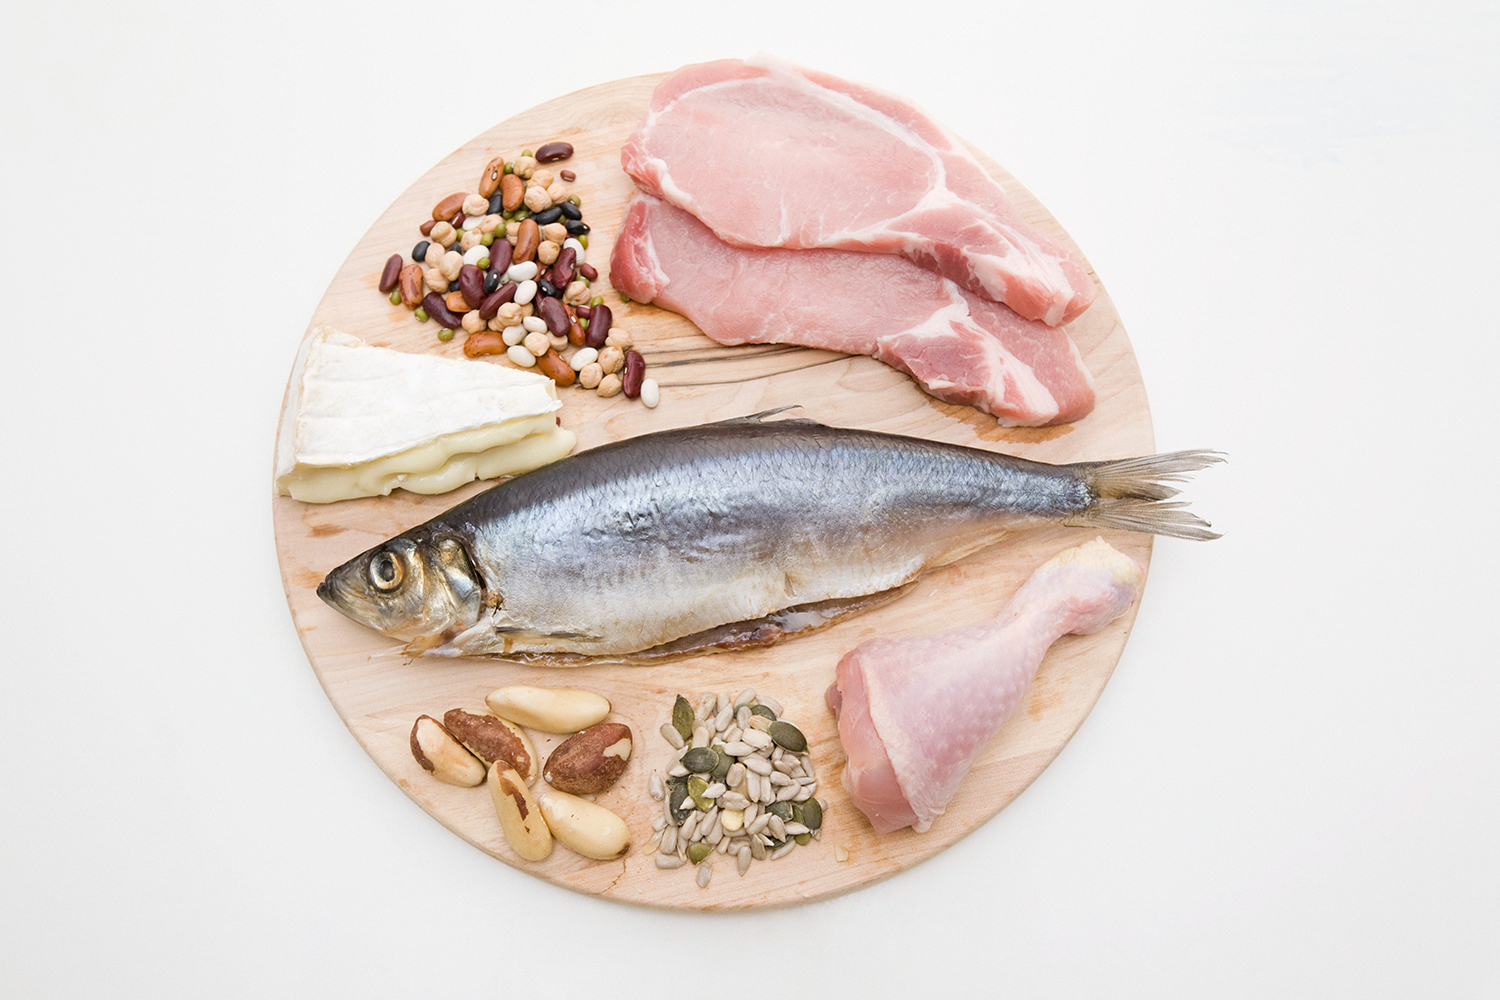 It's Time to Rethink High-Protein Diets for Weight Loss